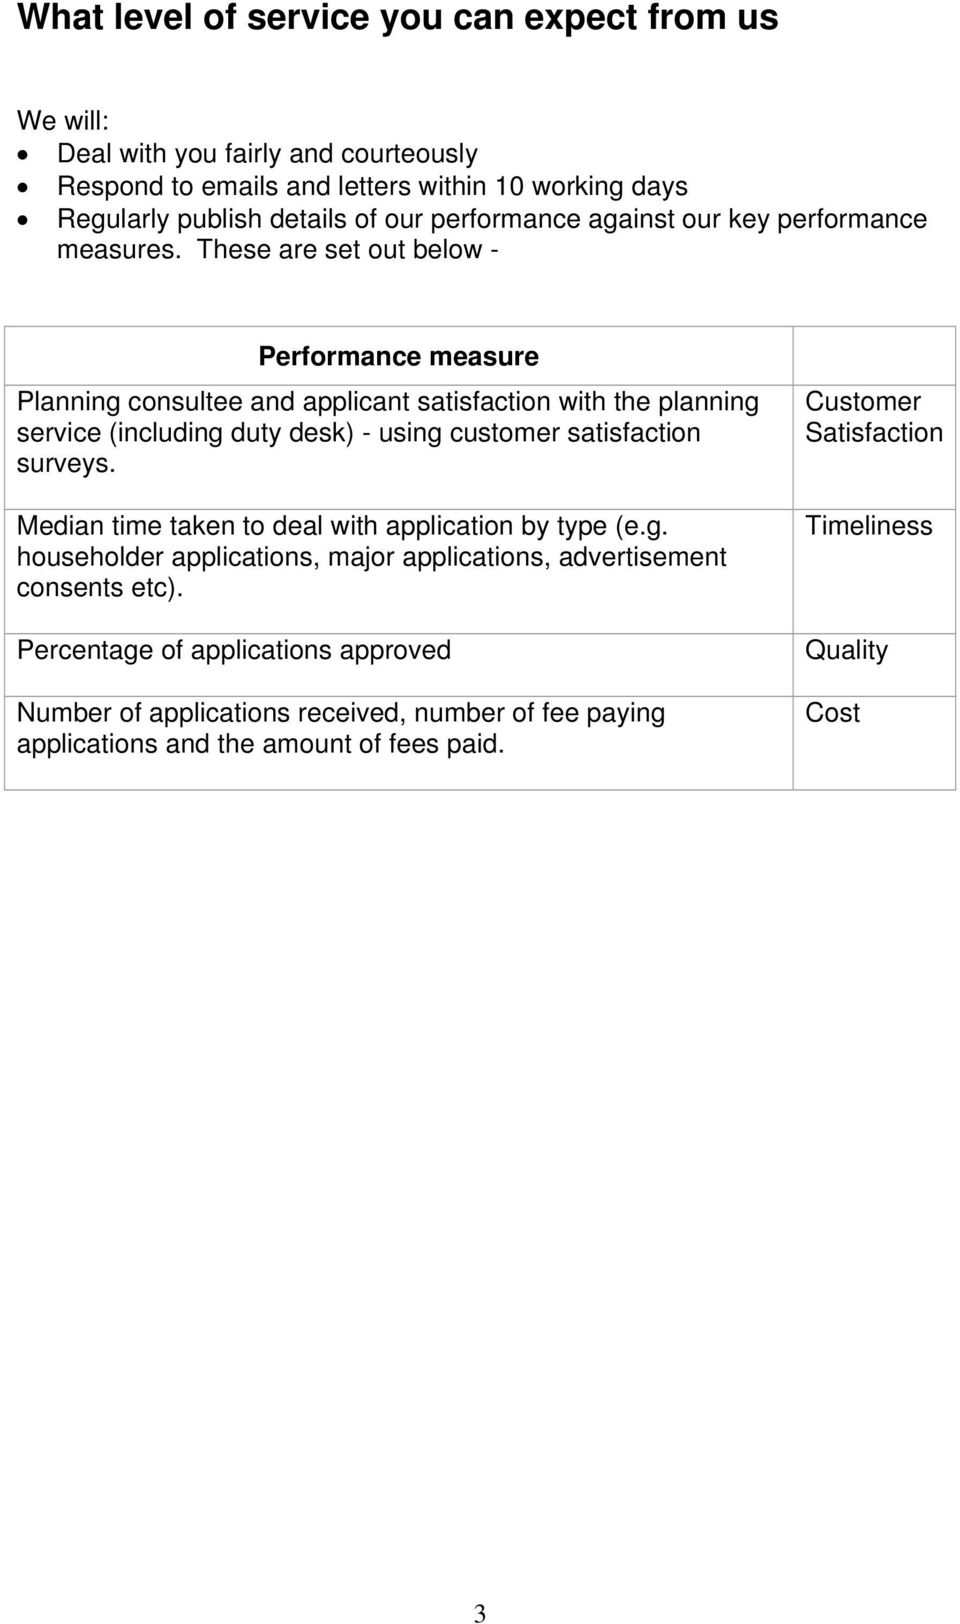 These are set out below - Performance measure Planning consultee and applicant satisfaction with the planning service (including duty desk) - using customer satisfaction surveys.